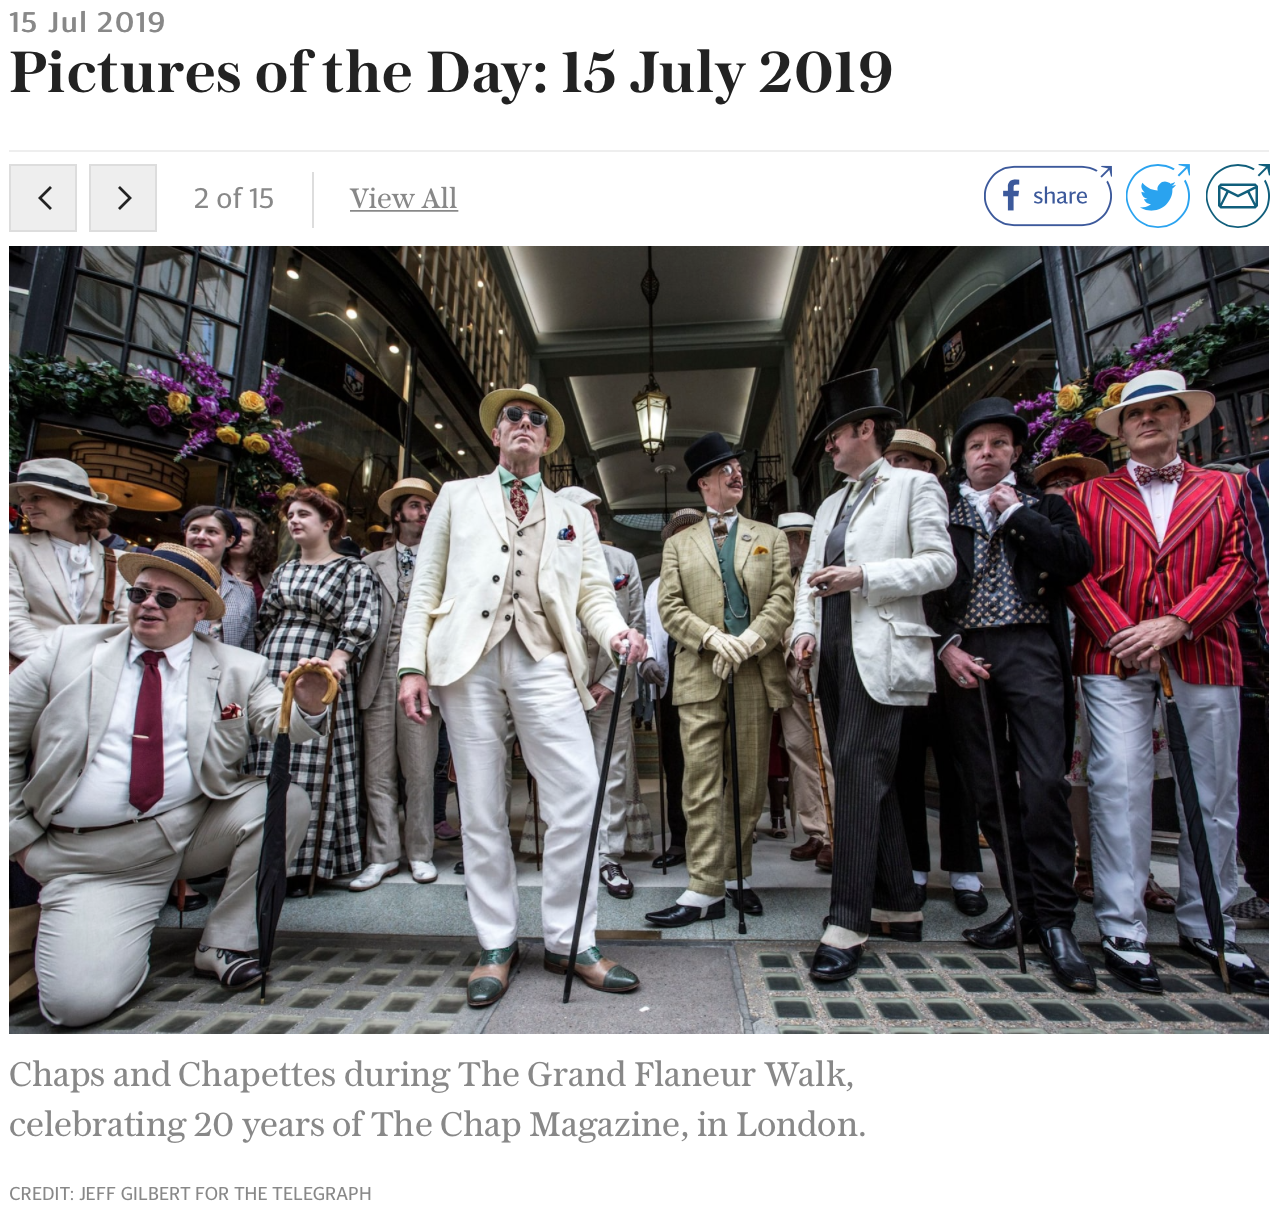 The Telegraph  included an excellent shot of these gentlemen in their 'Pictures of the Day' article